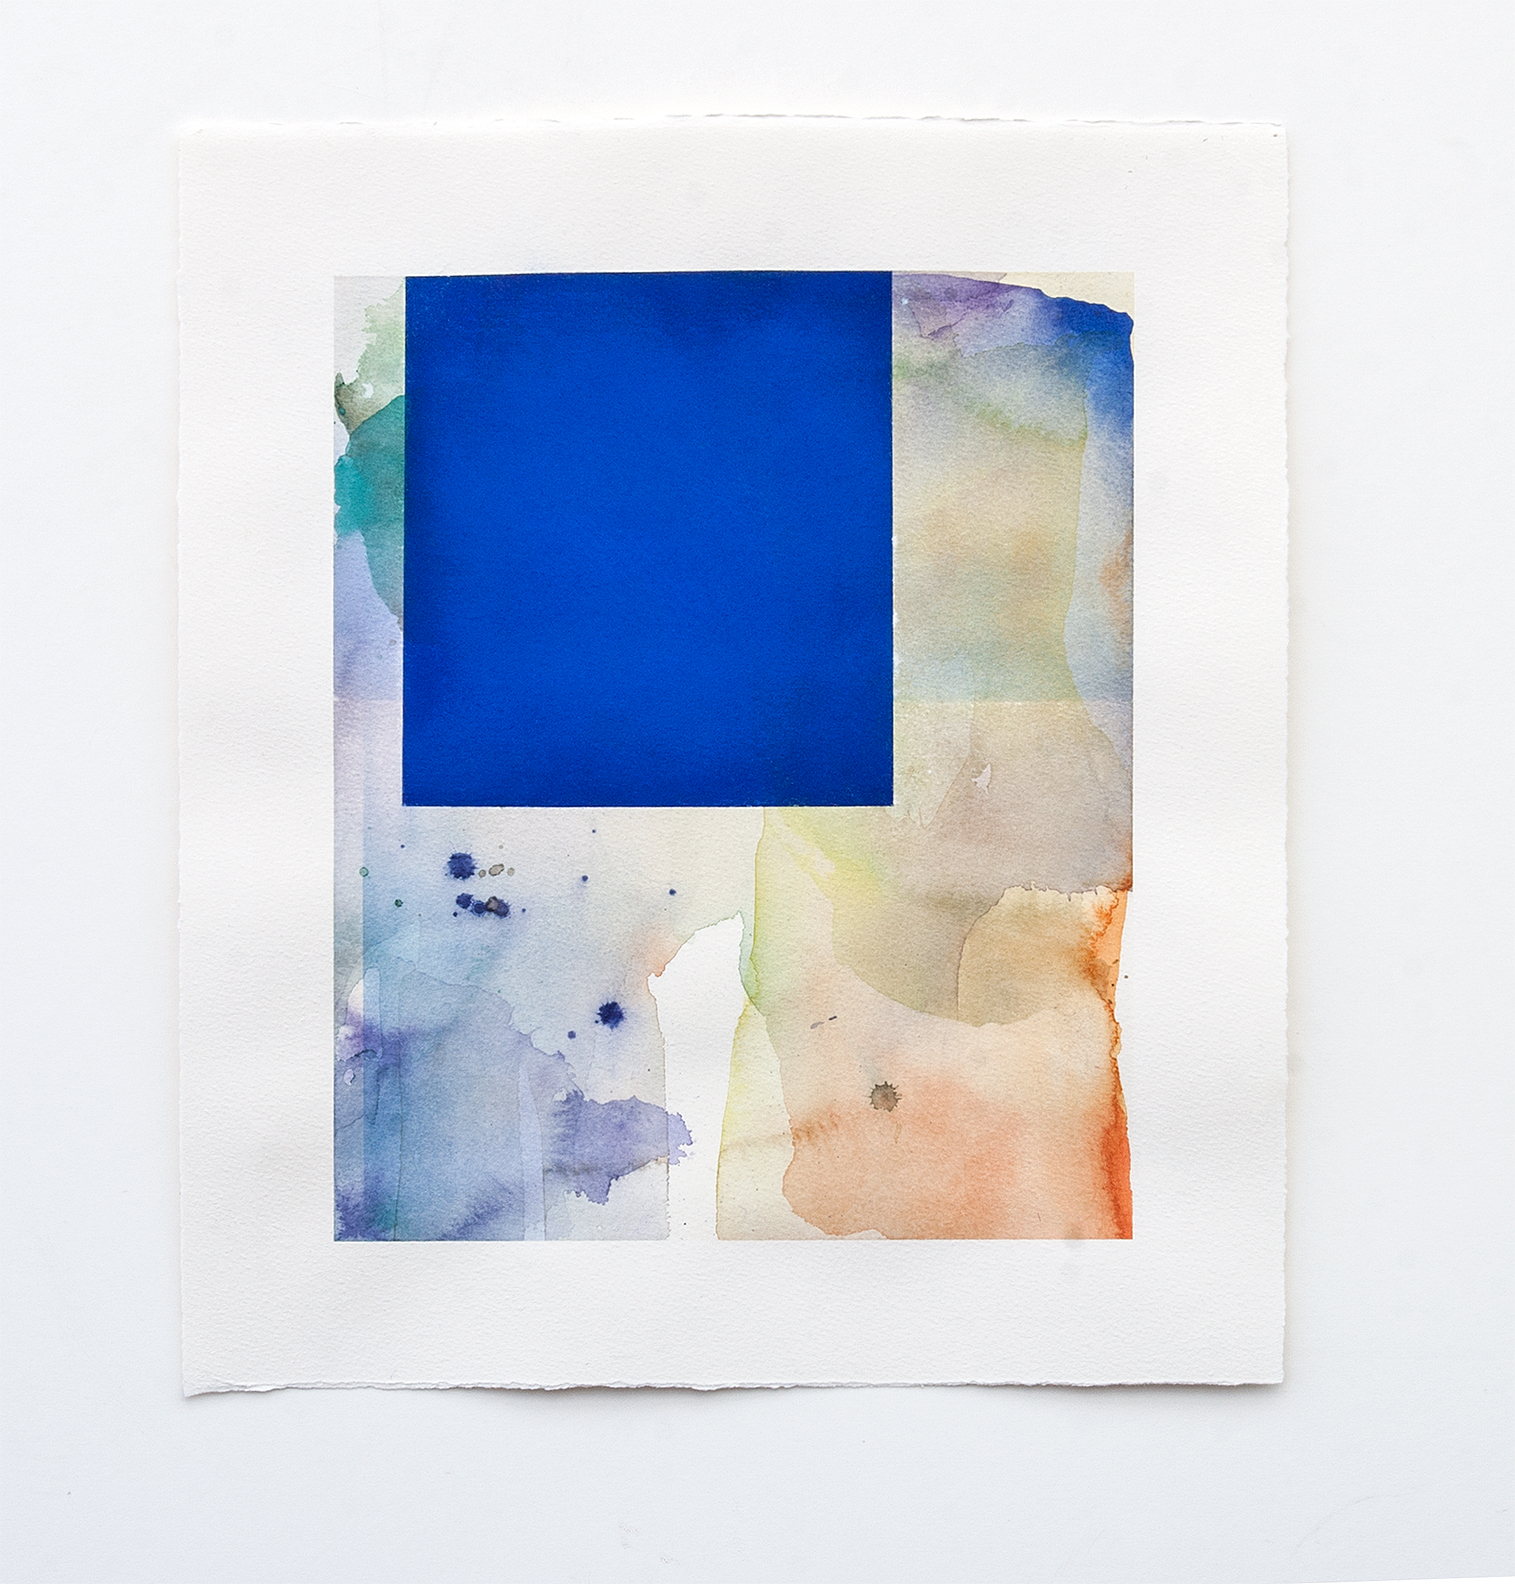 DANIEL BRICE, Untitled, 2015, pastel, watercolor on paper, 17 x 15 inches